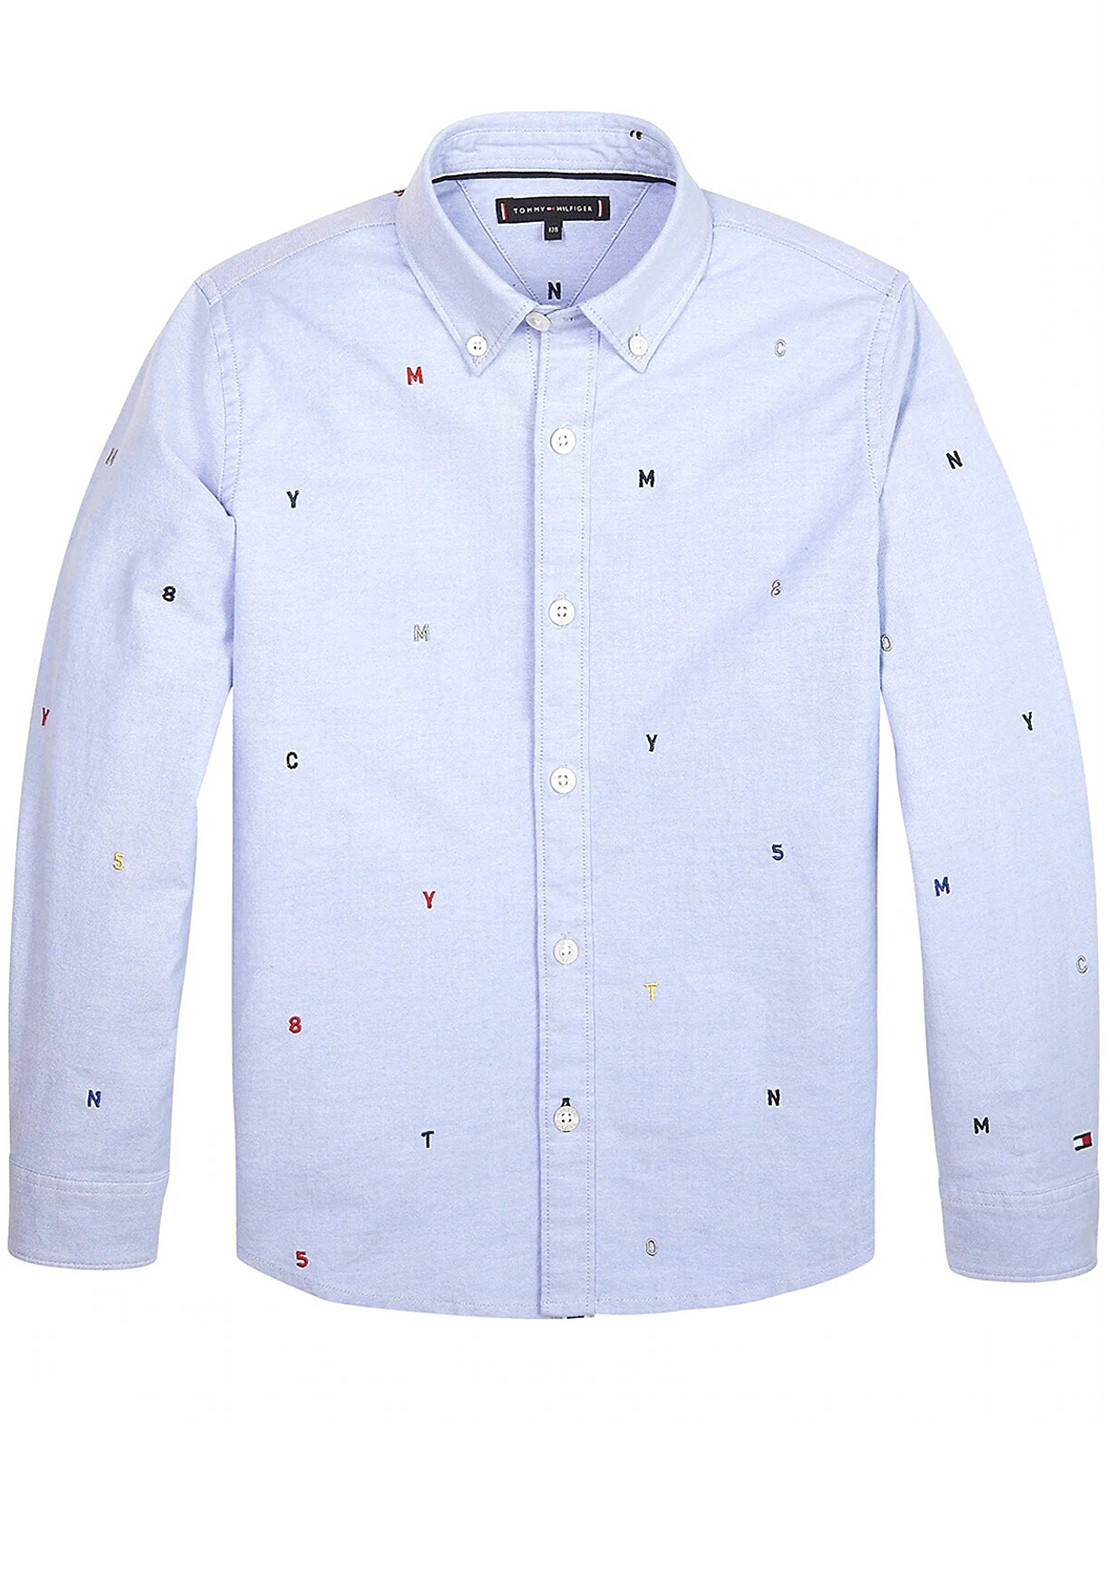 classic styles best quality innovative design Tommy Hilfiger Boys Embroidered Letter Shirt, Blue